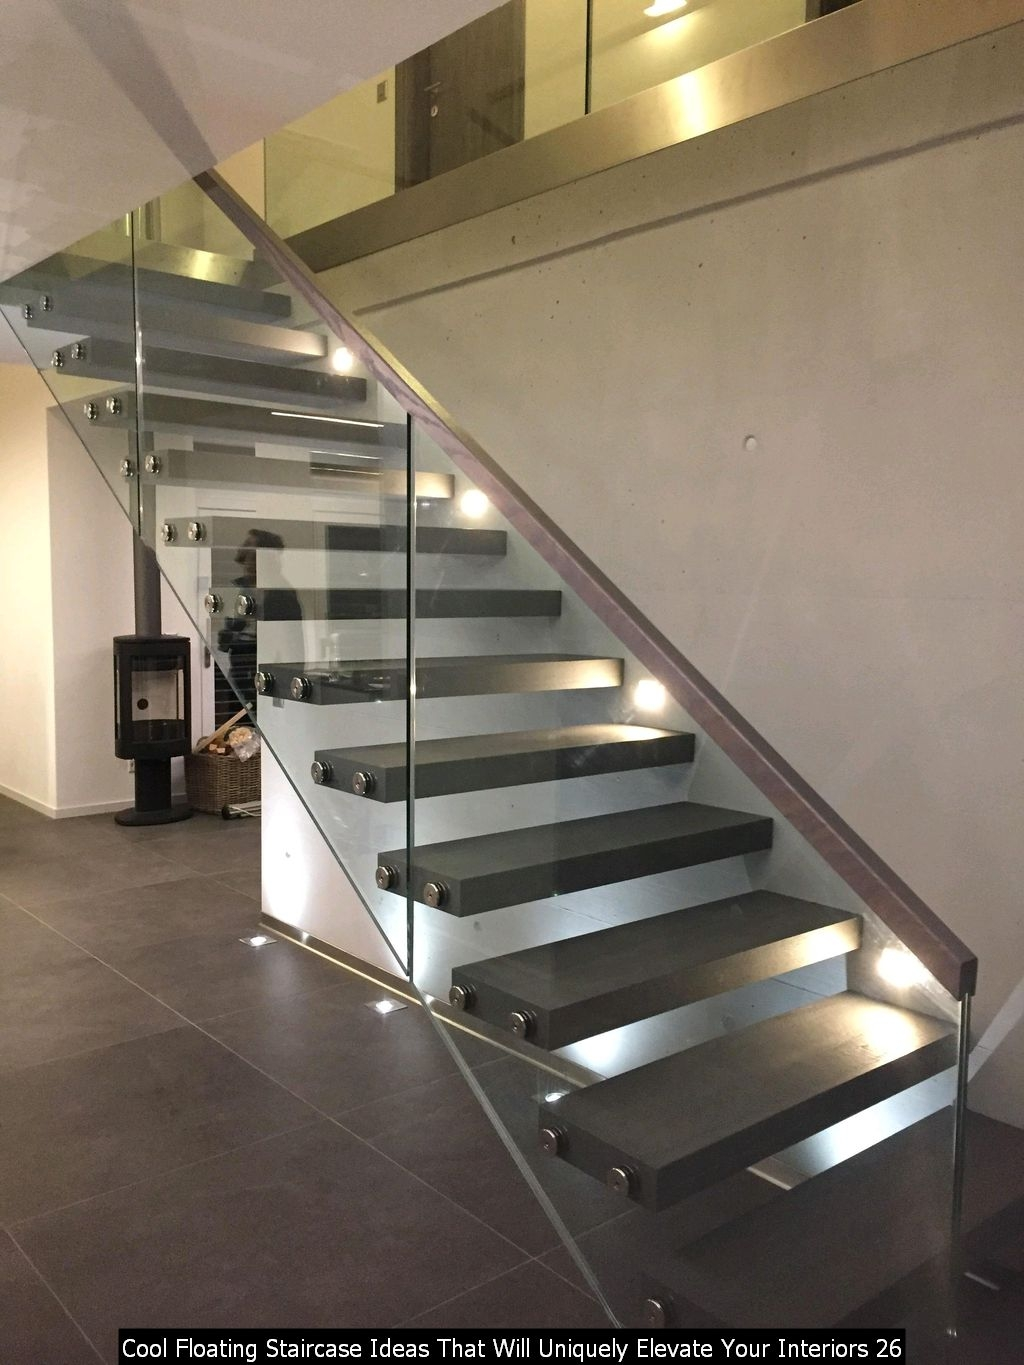 Cool Floating Staircase Ideas That Will Uniquely Elevate Your Interiors 26